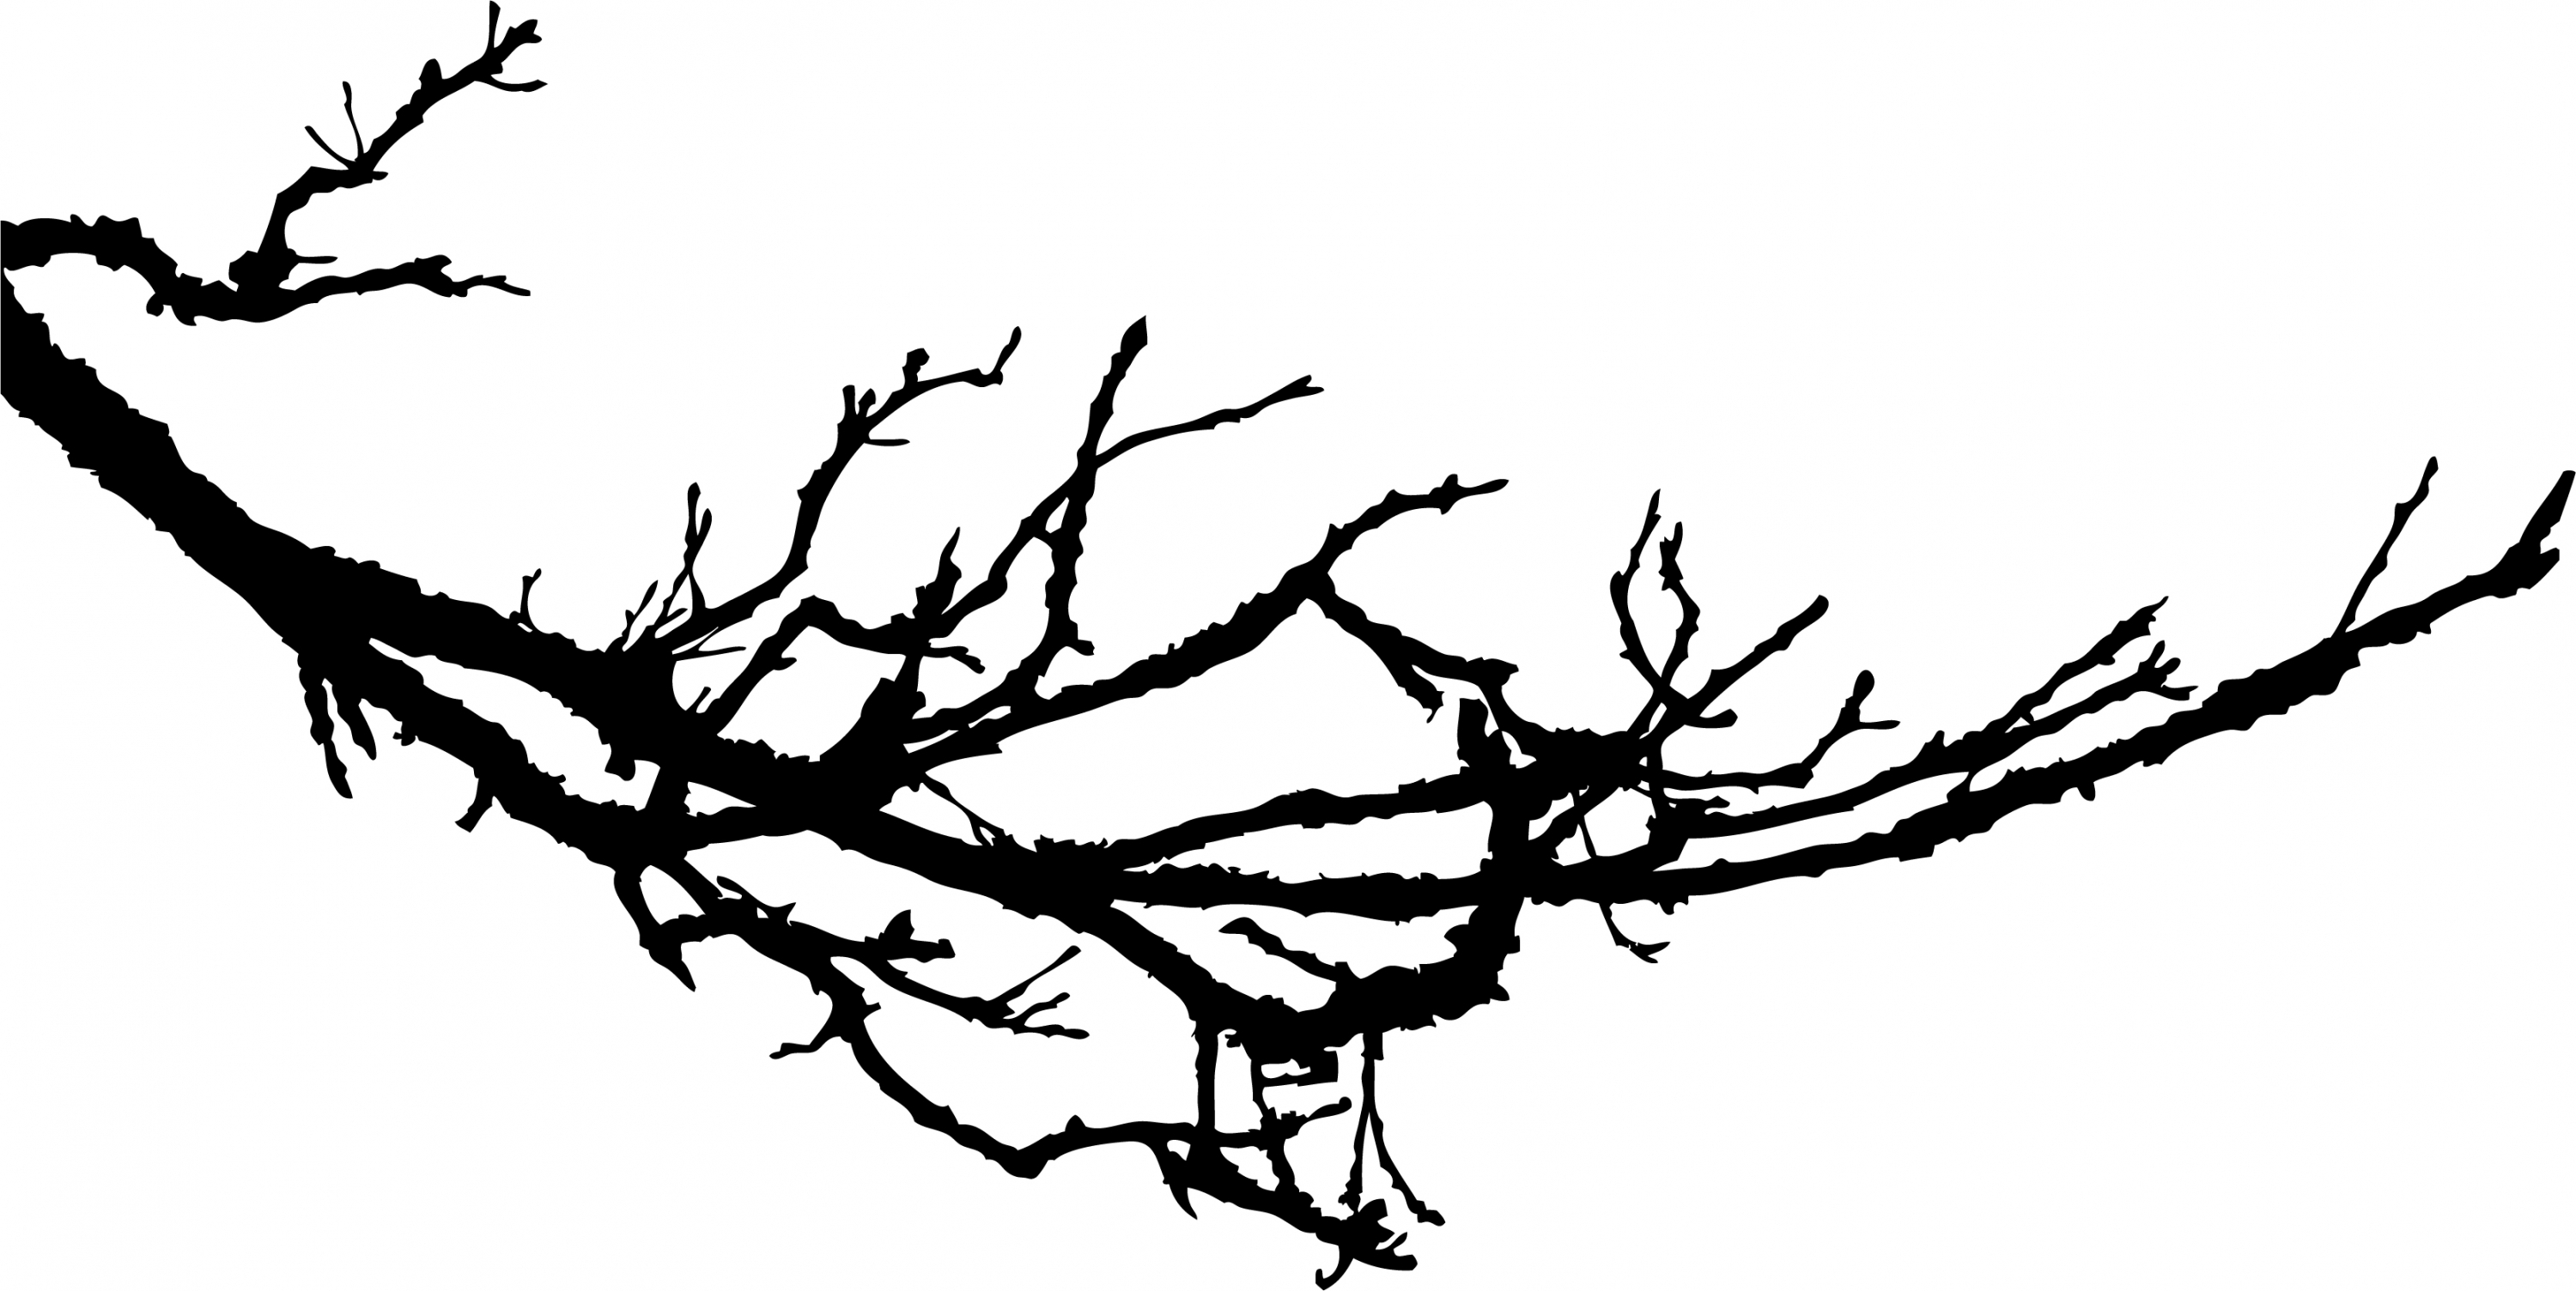 3000x1504 Tree Branch Drawing Inkscape Tutorial How To Draw A Tree Branch